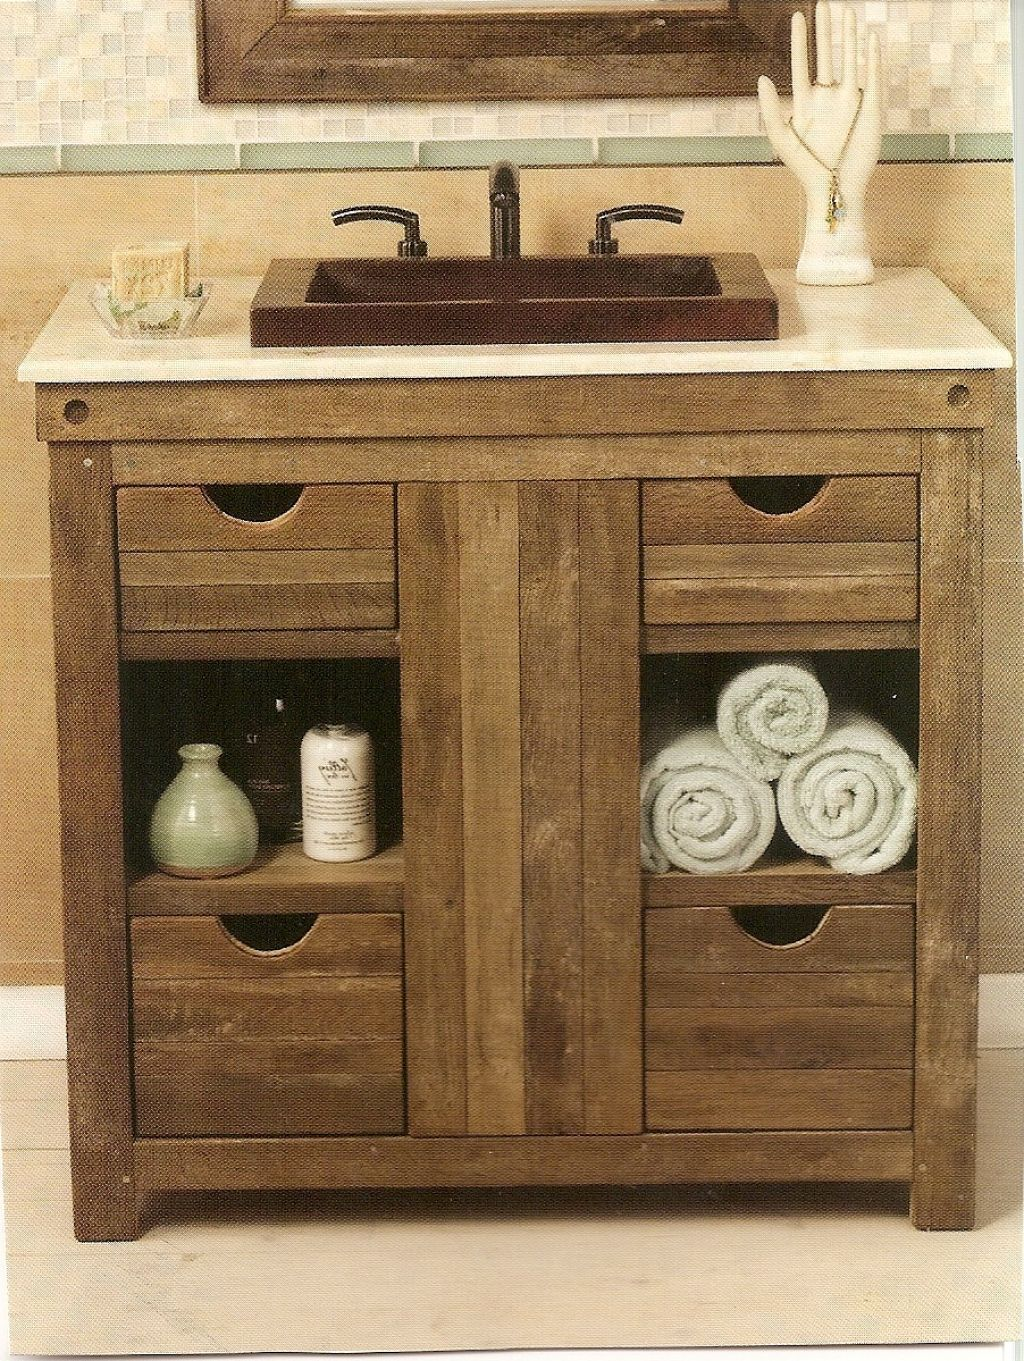 25 incredible vanities for small bathrooms with examples images rh pinterest com